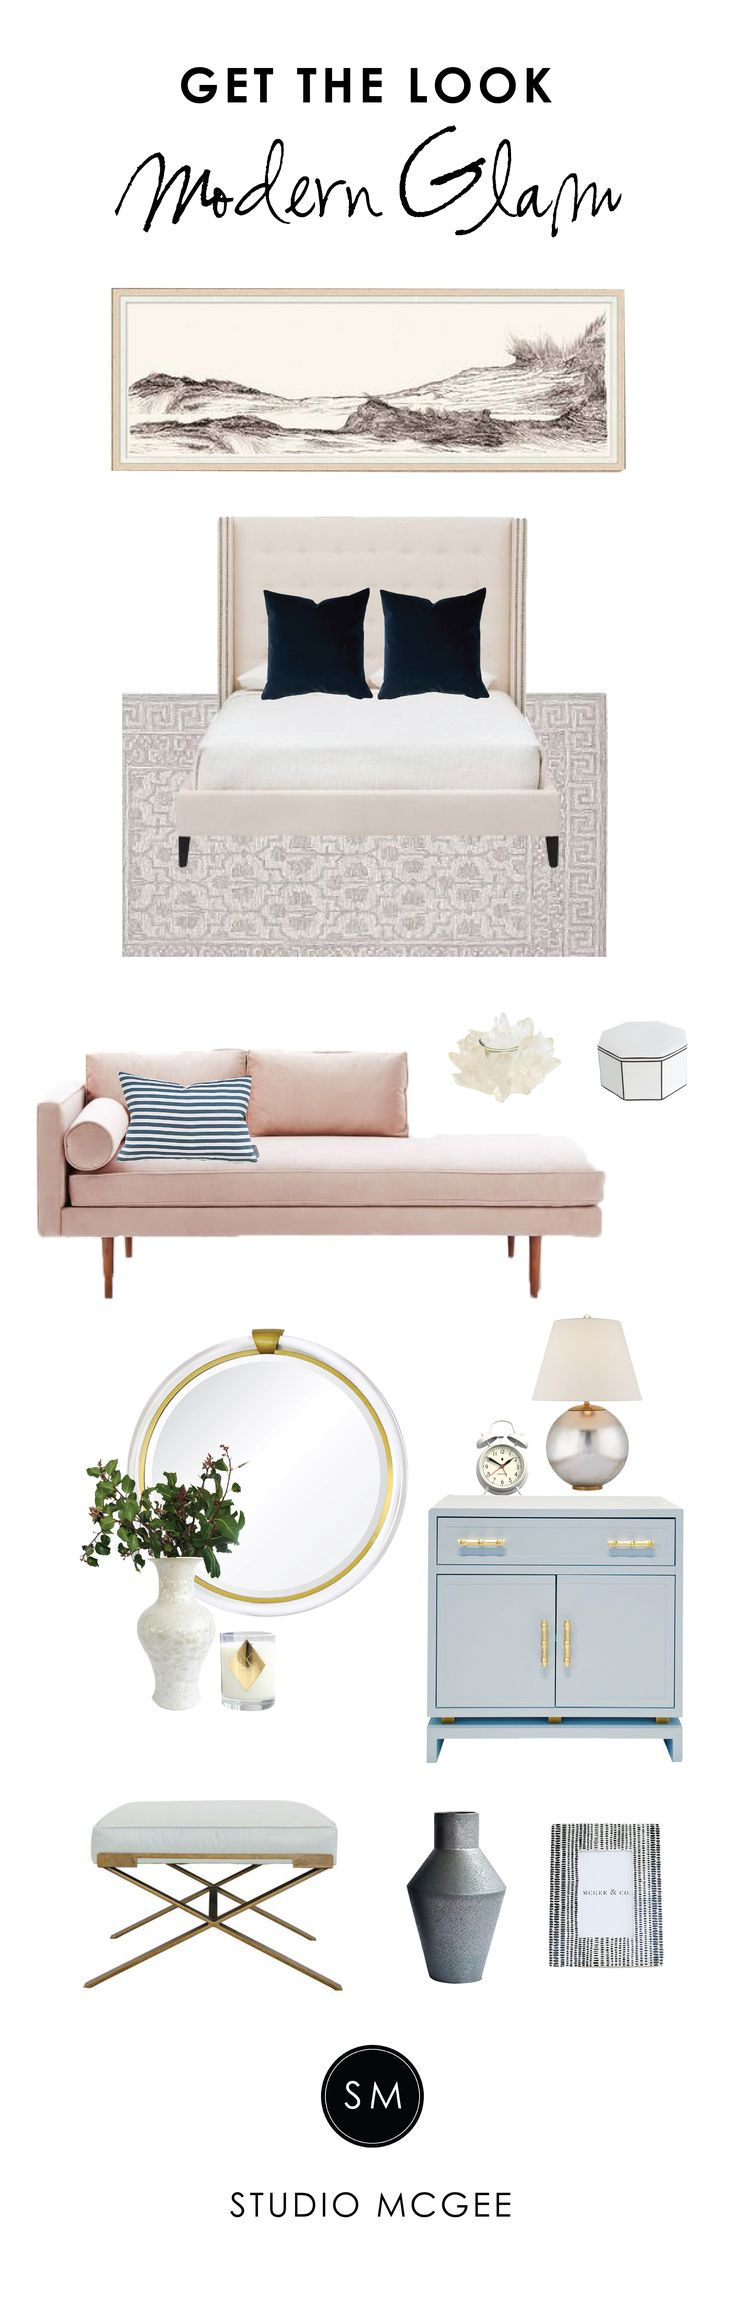 Get the Look: Modern Glam Bedroom - Studio McGee